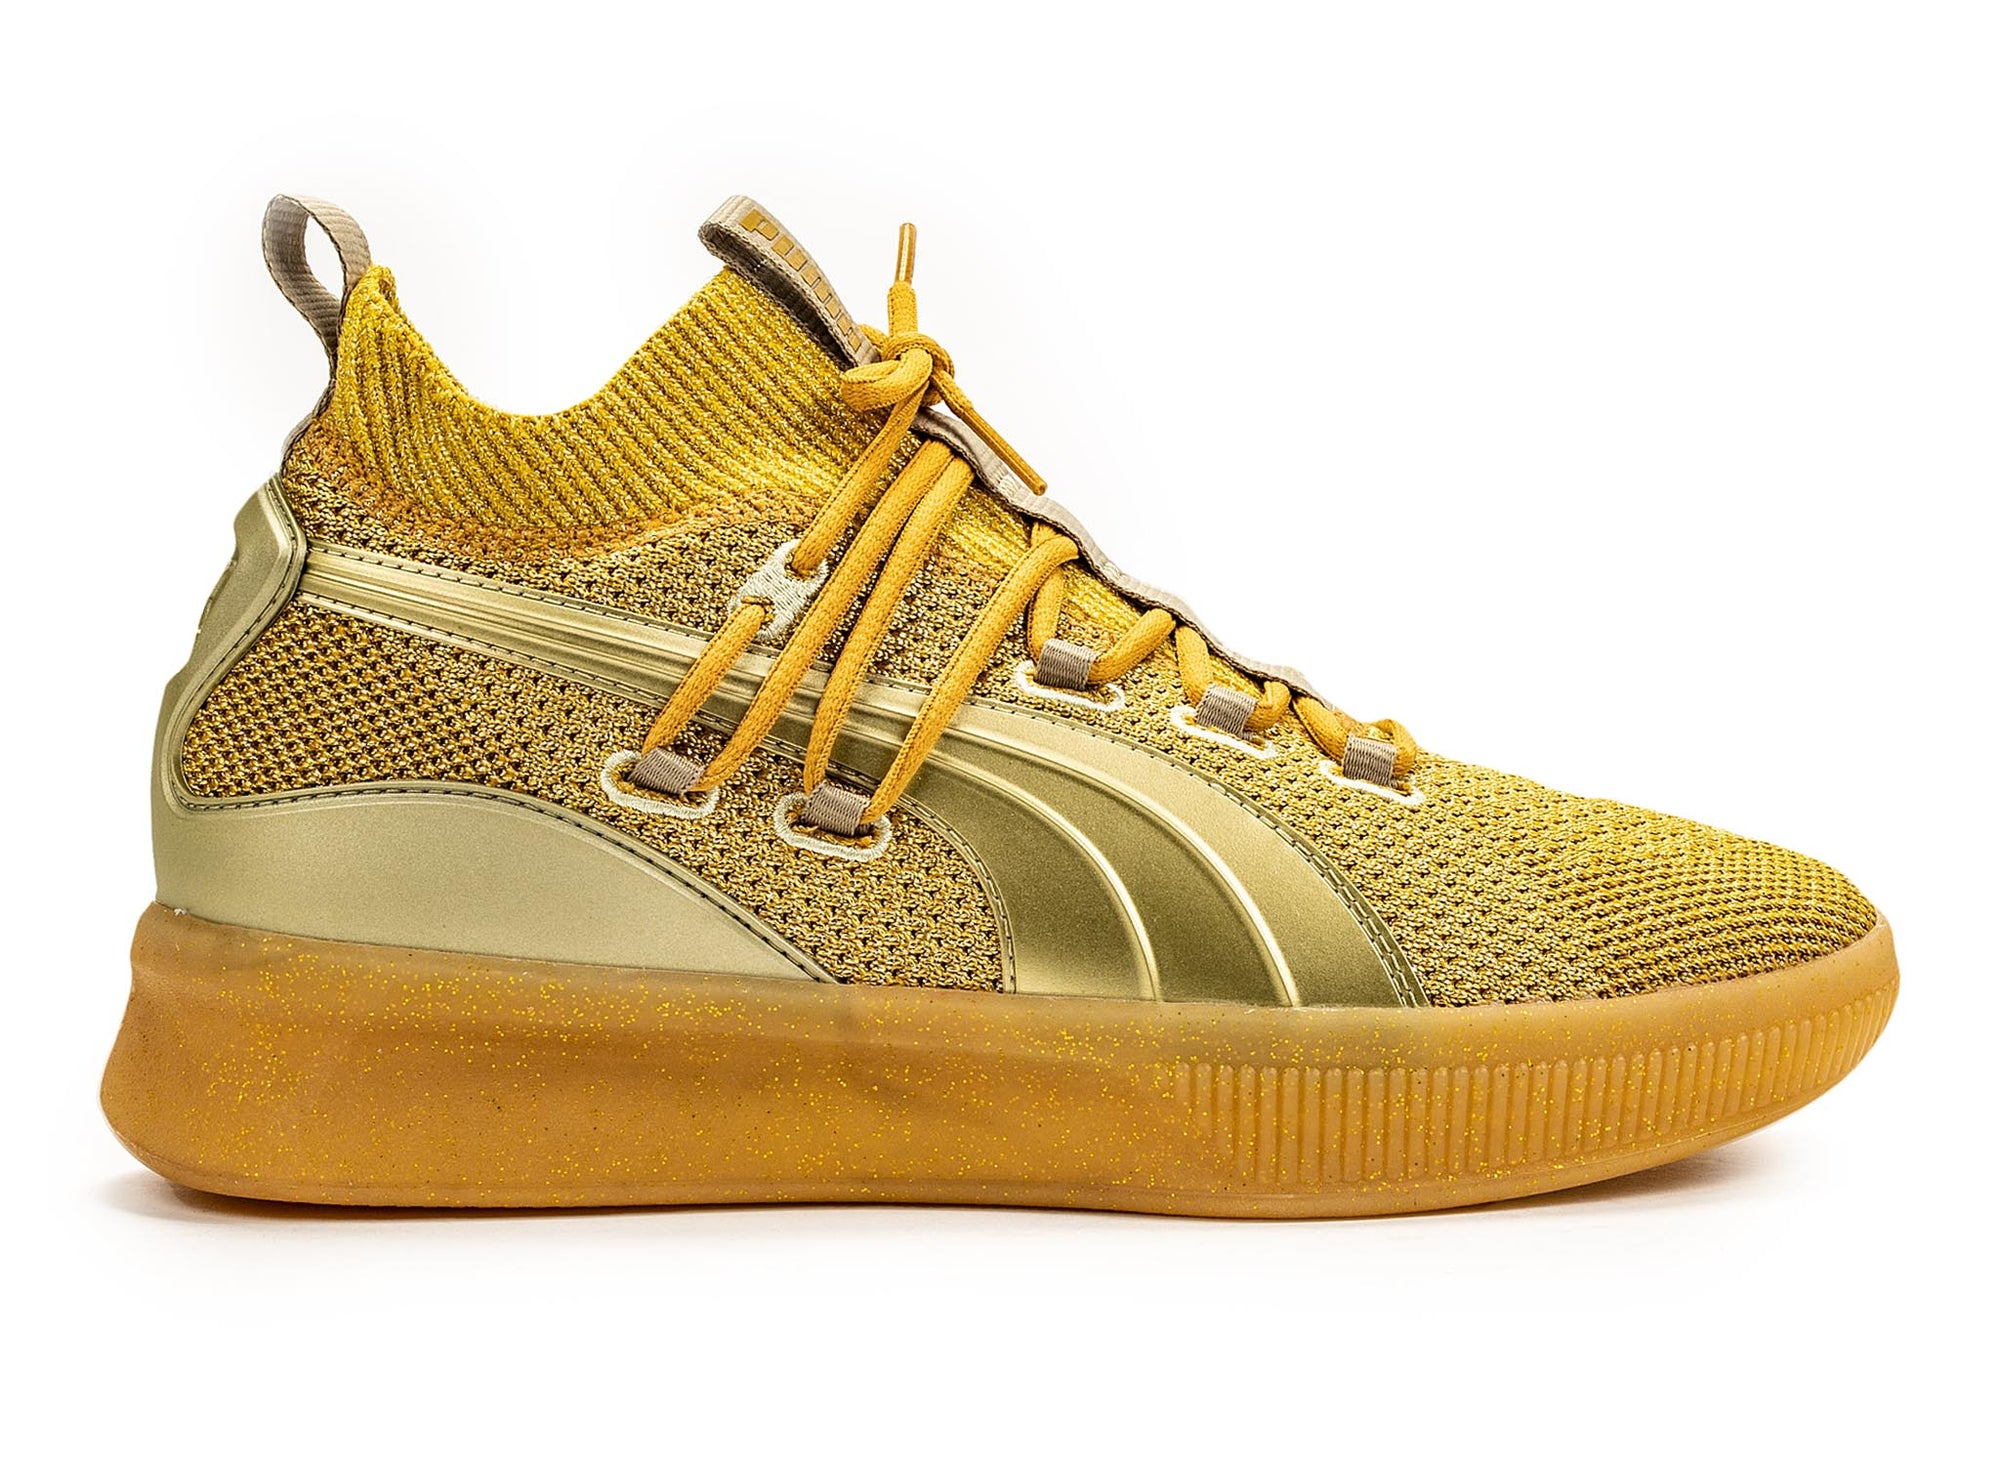 New Puma Clyde Gold Size 8